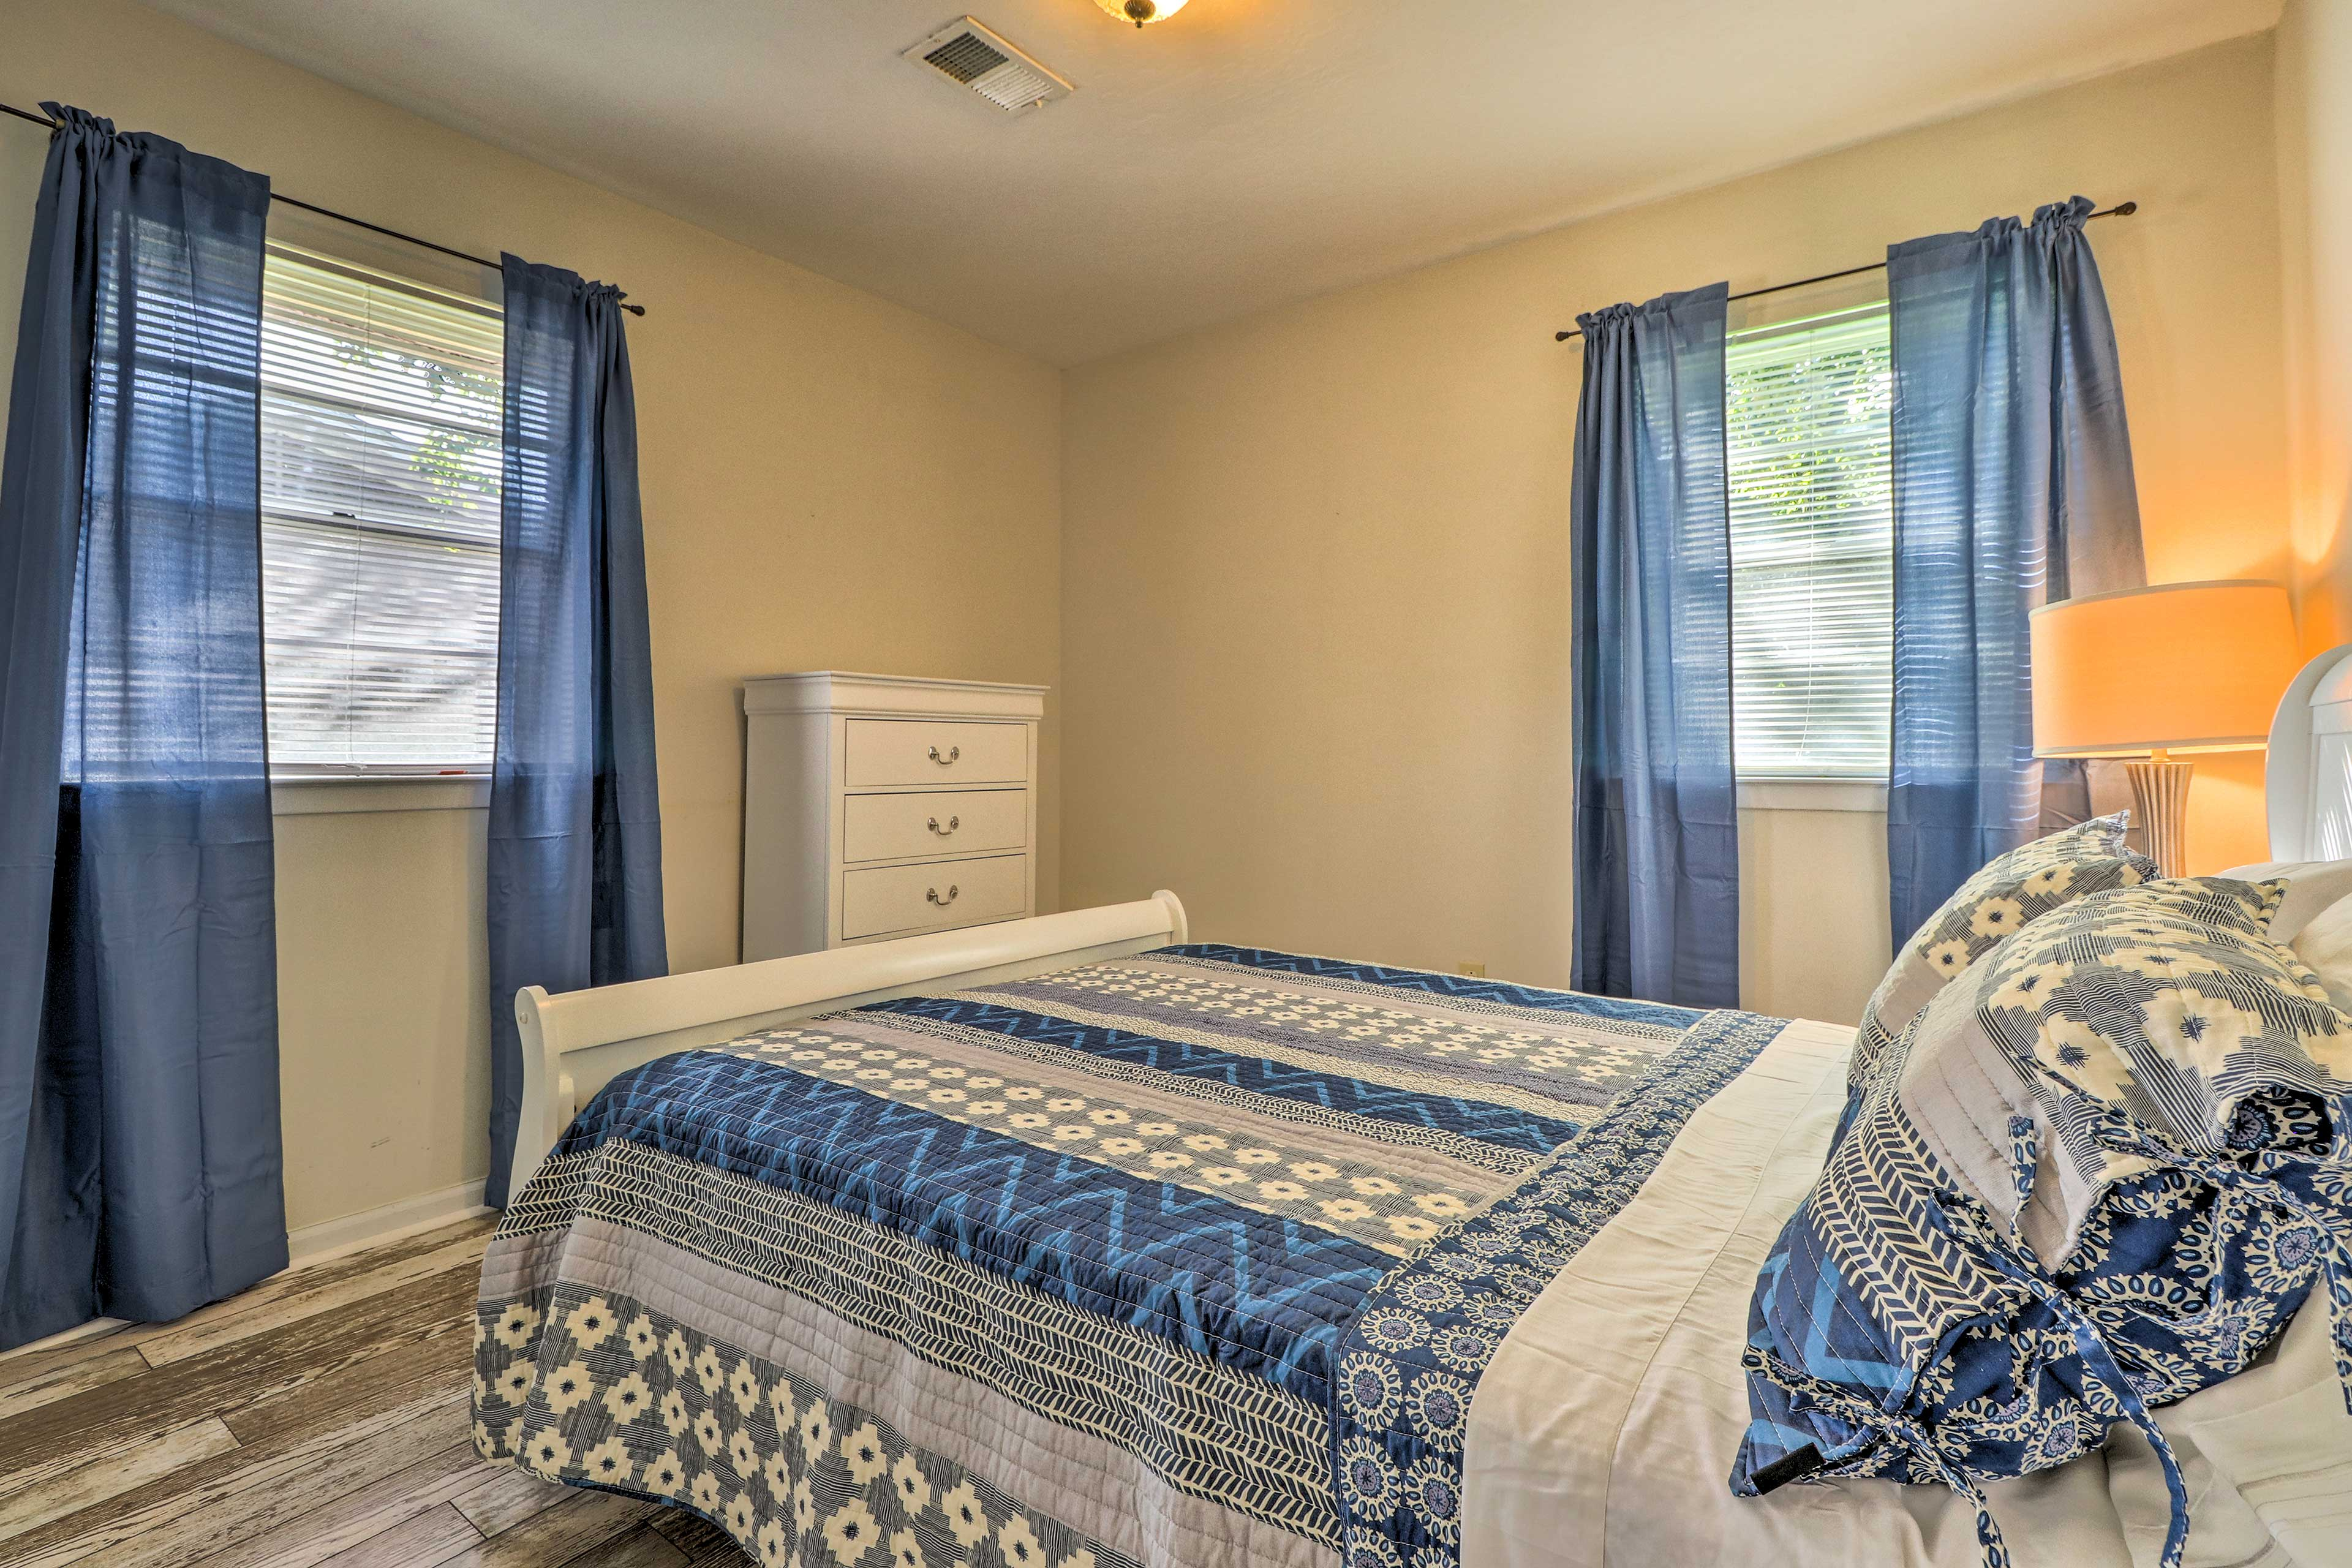 Sleep in late in this charming blue-themed room.